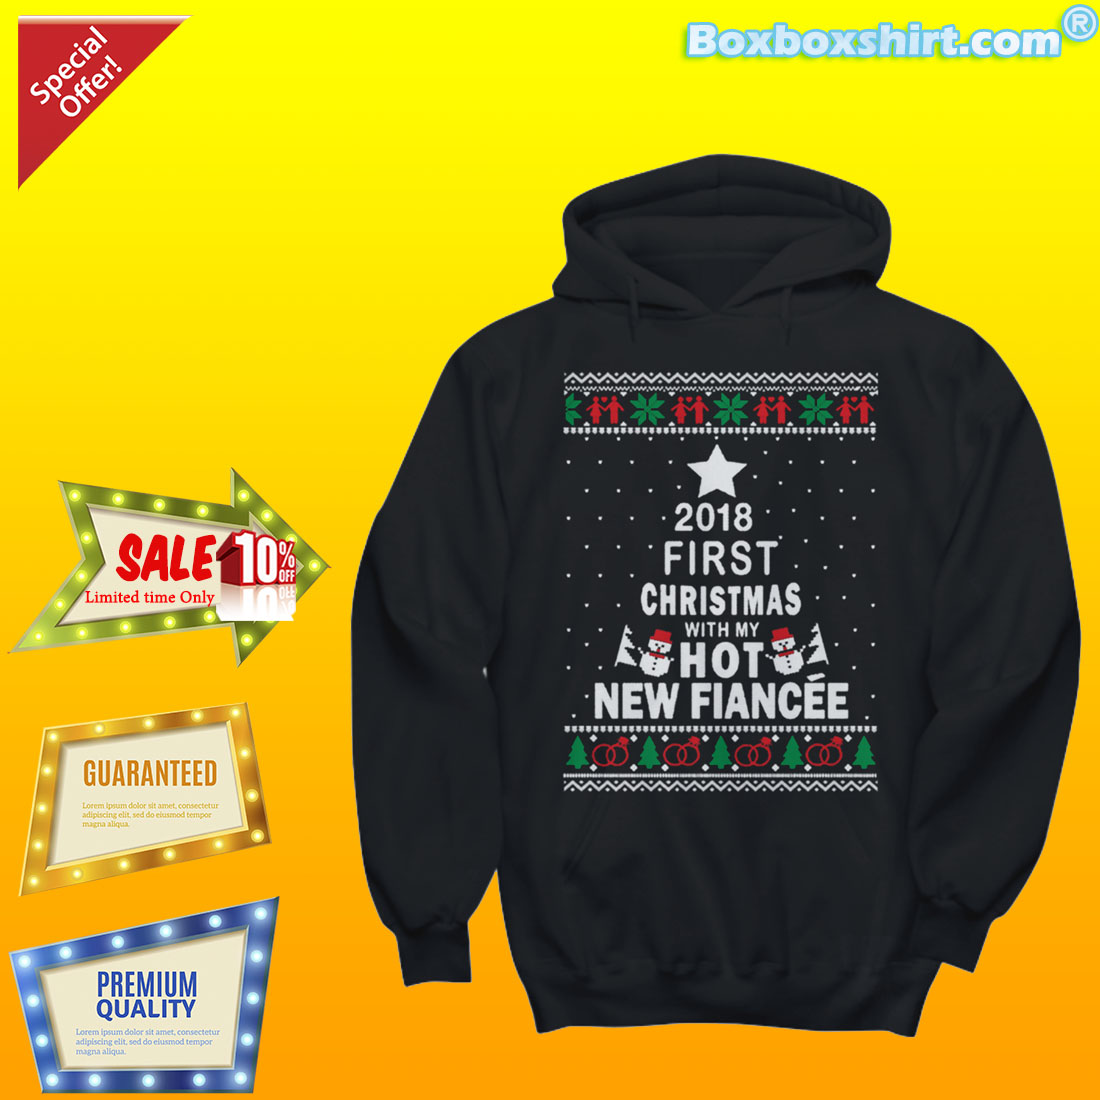 Christmas with my hot new fiancee ugly Christmas sweater shirt